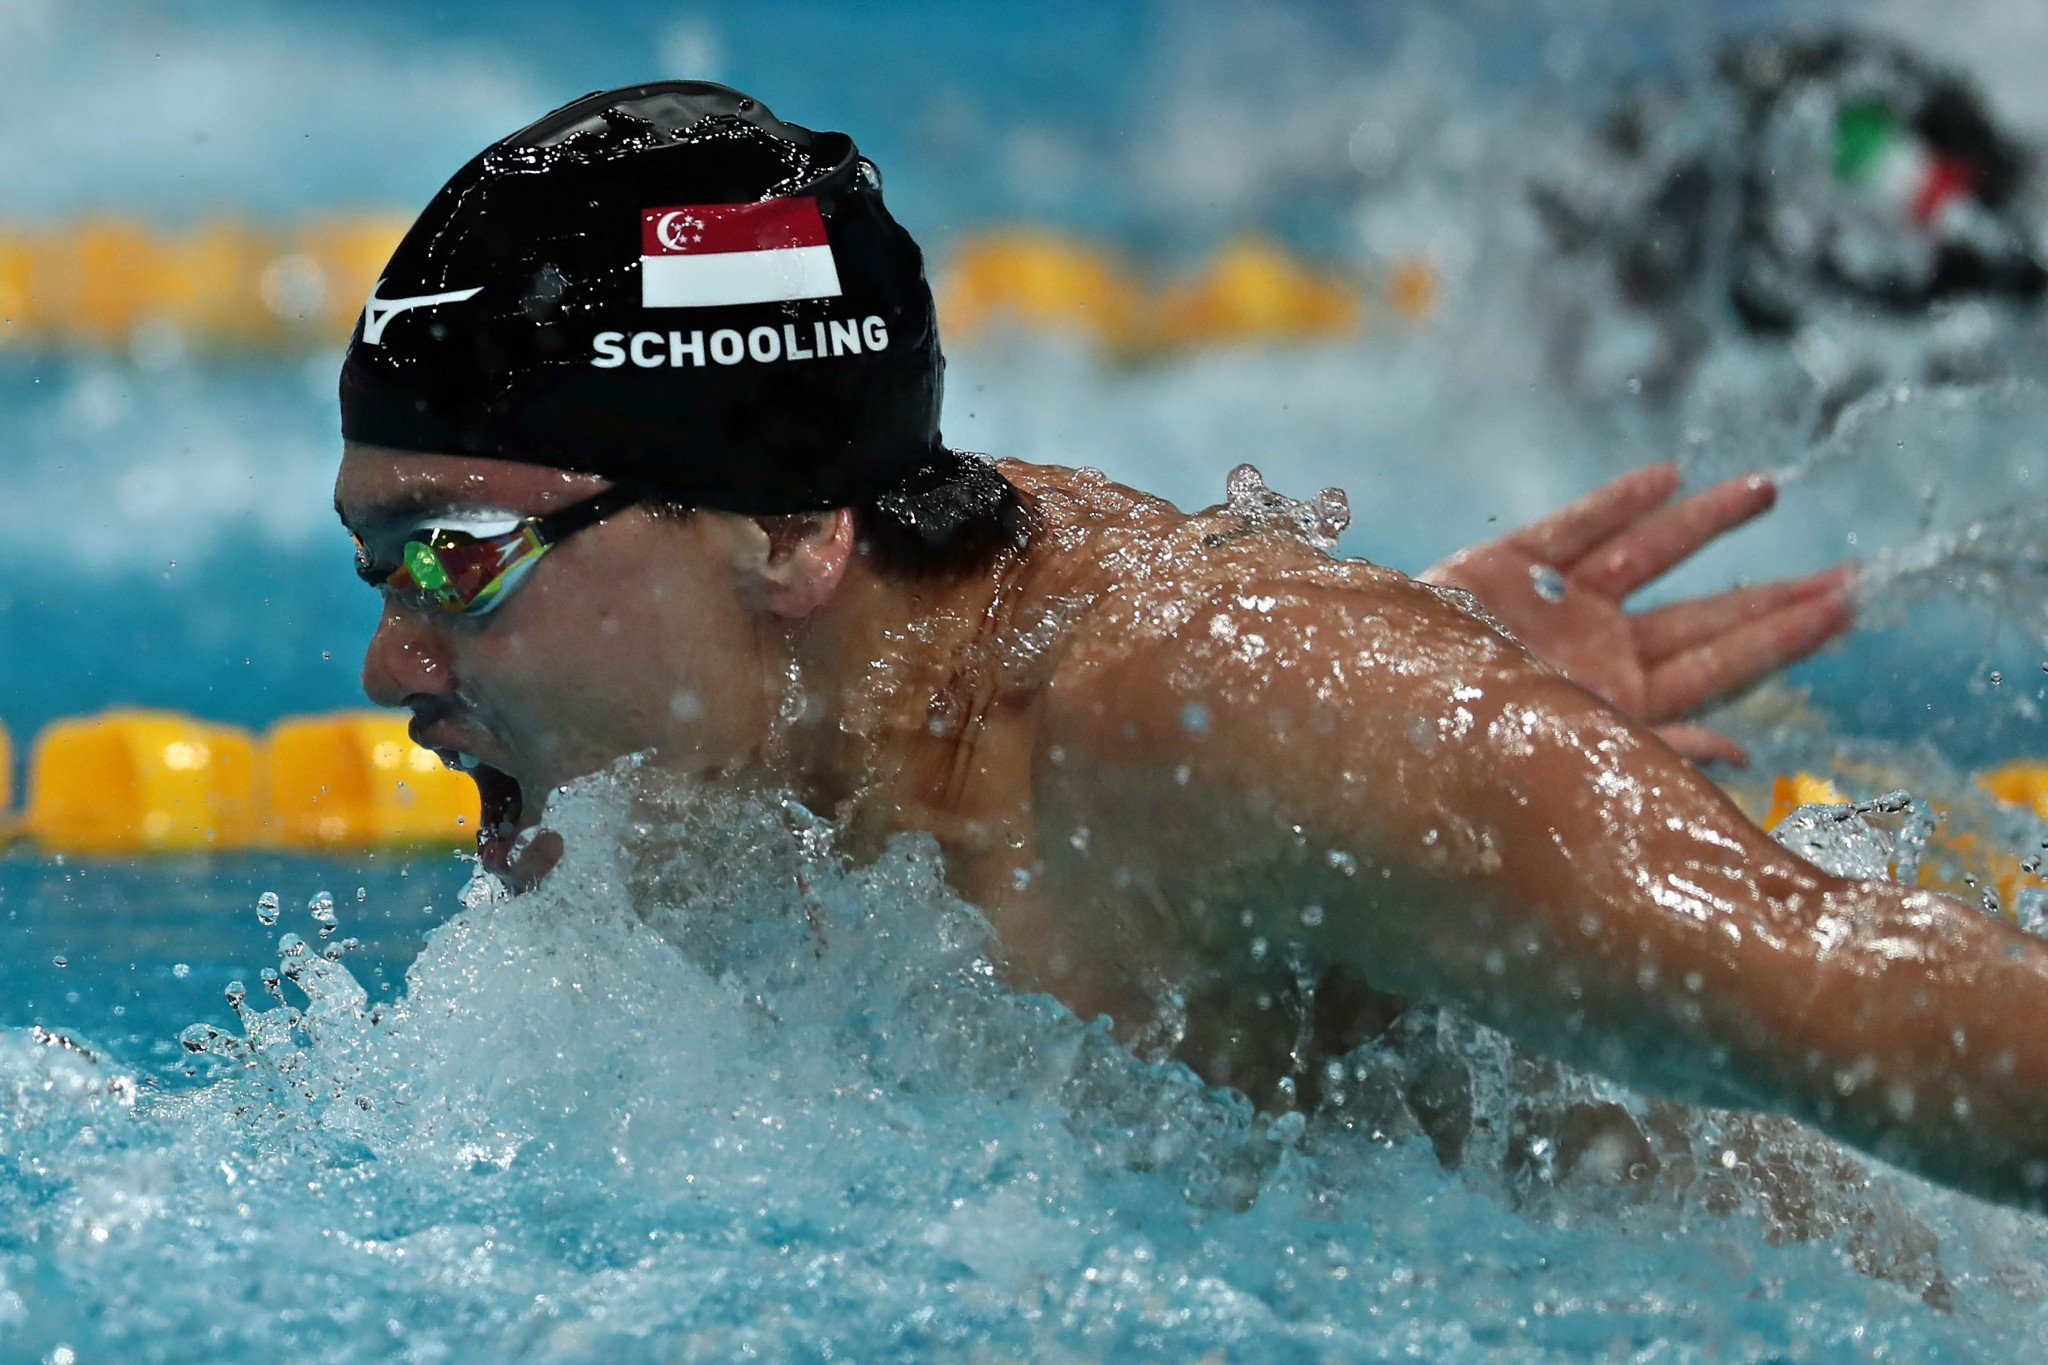 Joseph Schooling is the reigning Olympic champion in the men's 100m butterfly ©Getty Images